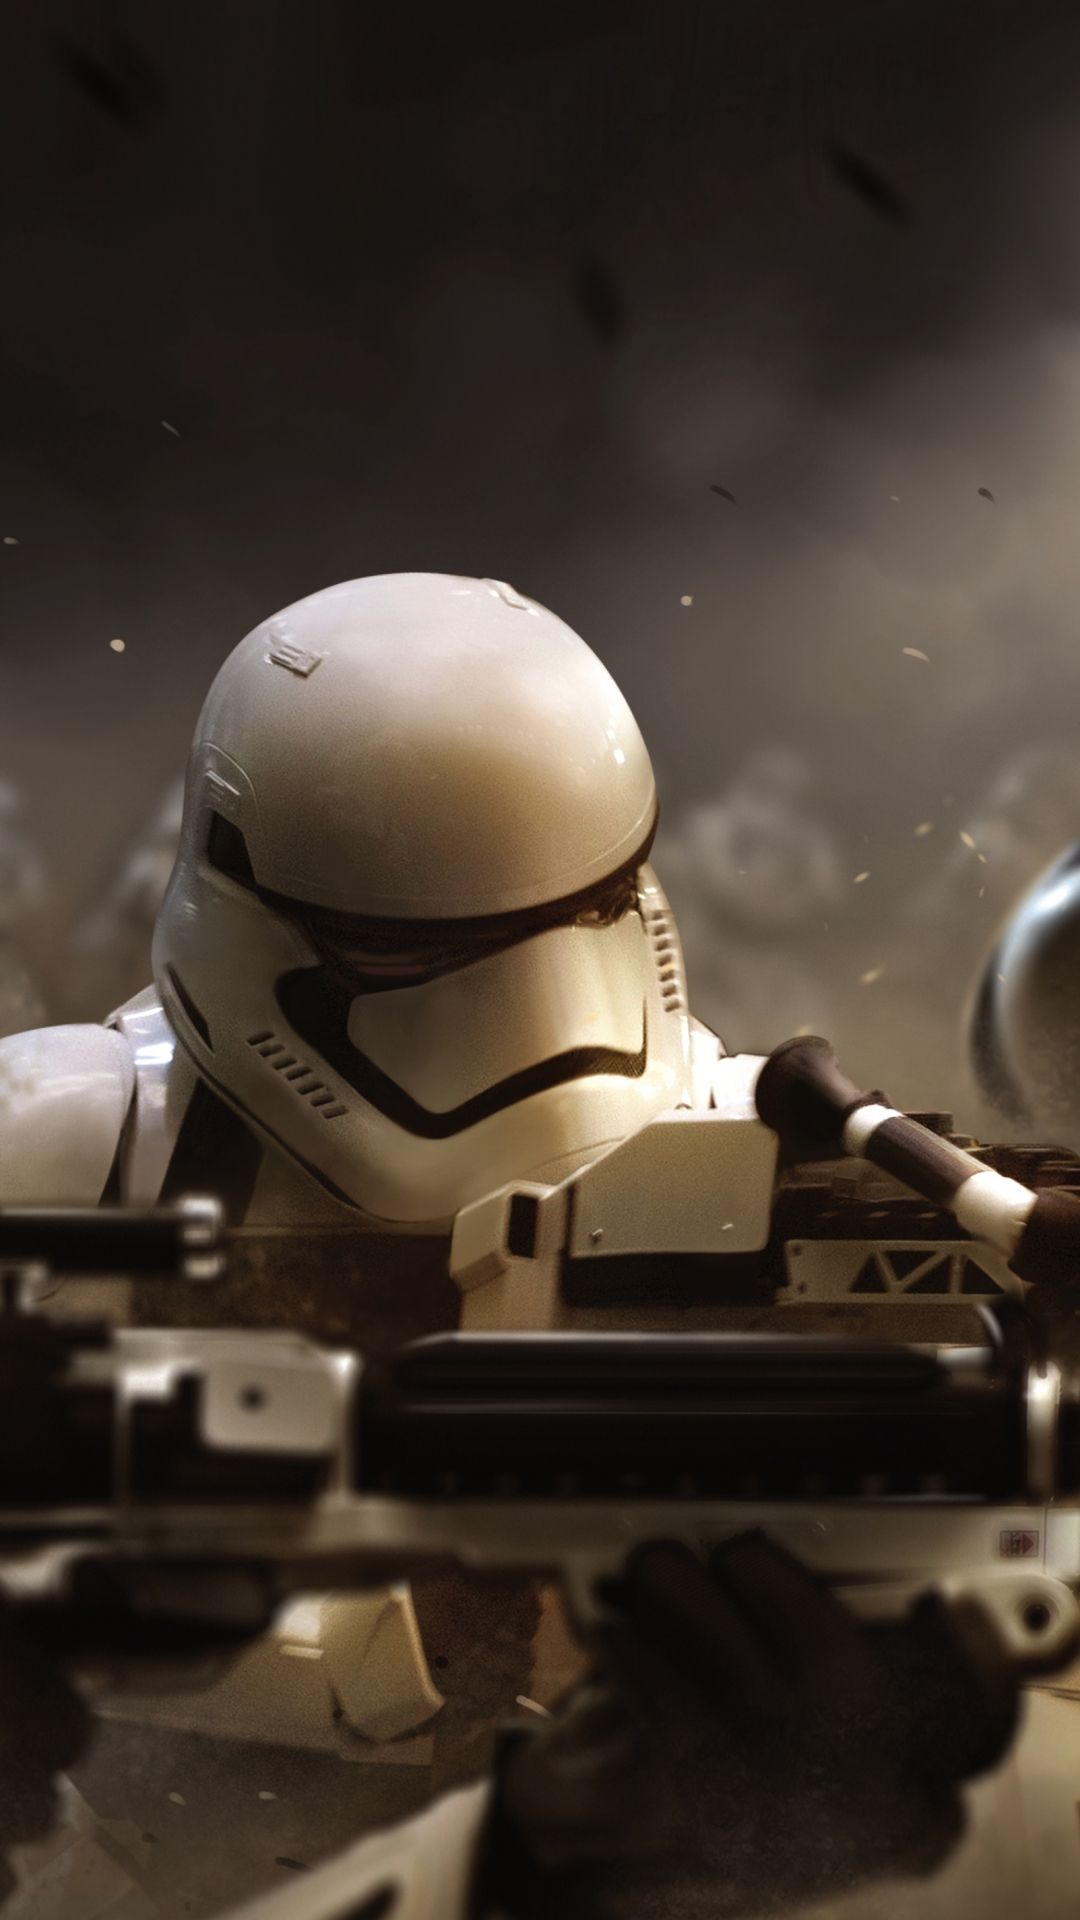 Stormtrooper Star Wars 4k